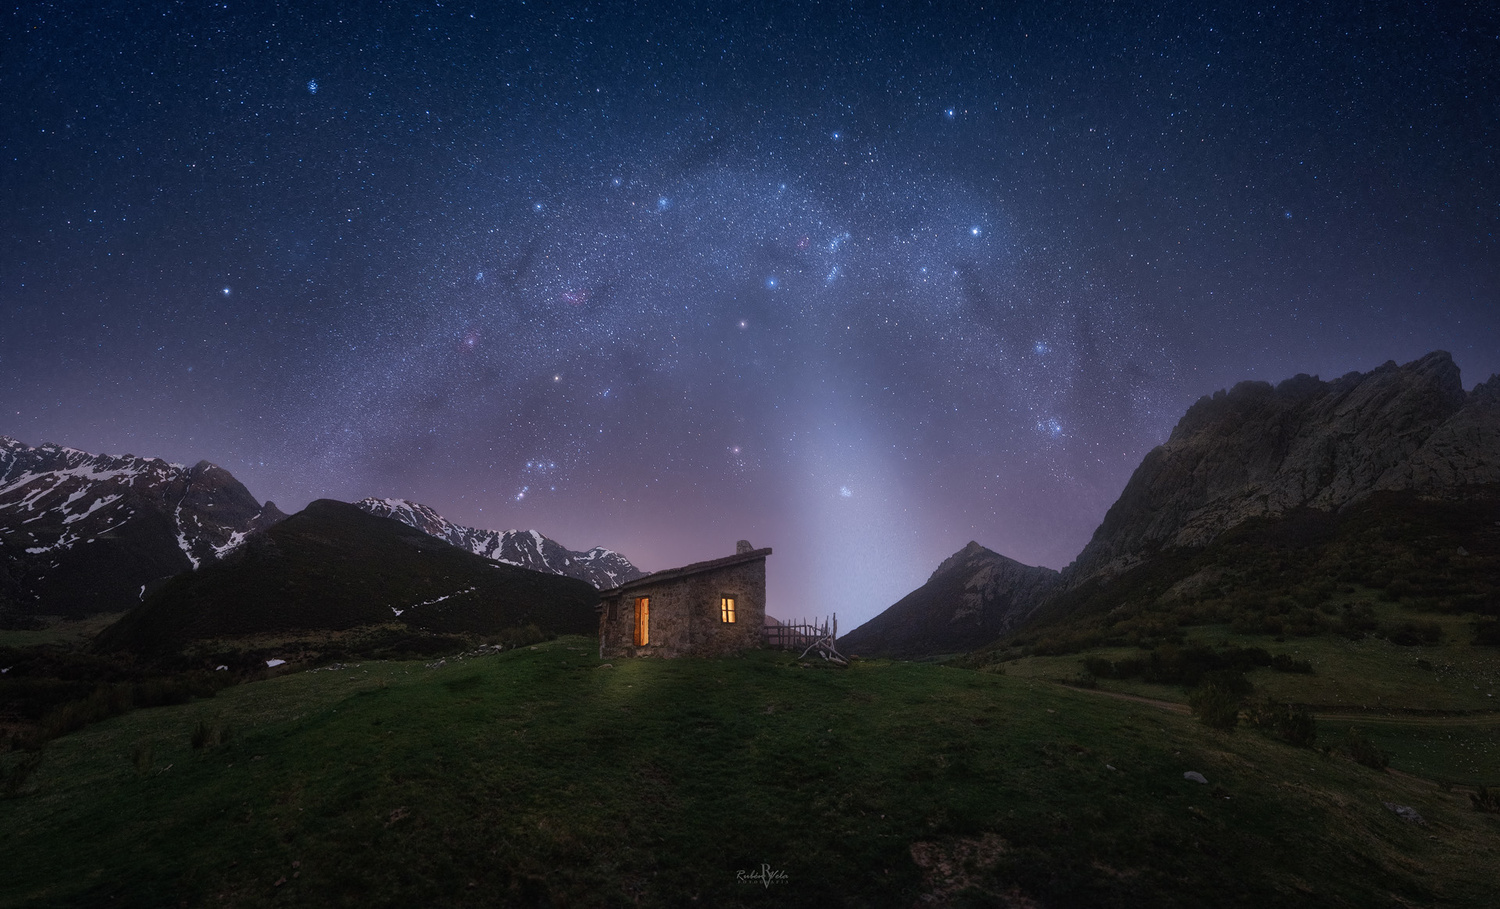 The warmth of a shelter on those cold nights by Rubén Vela Martín